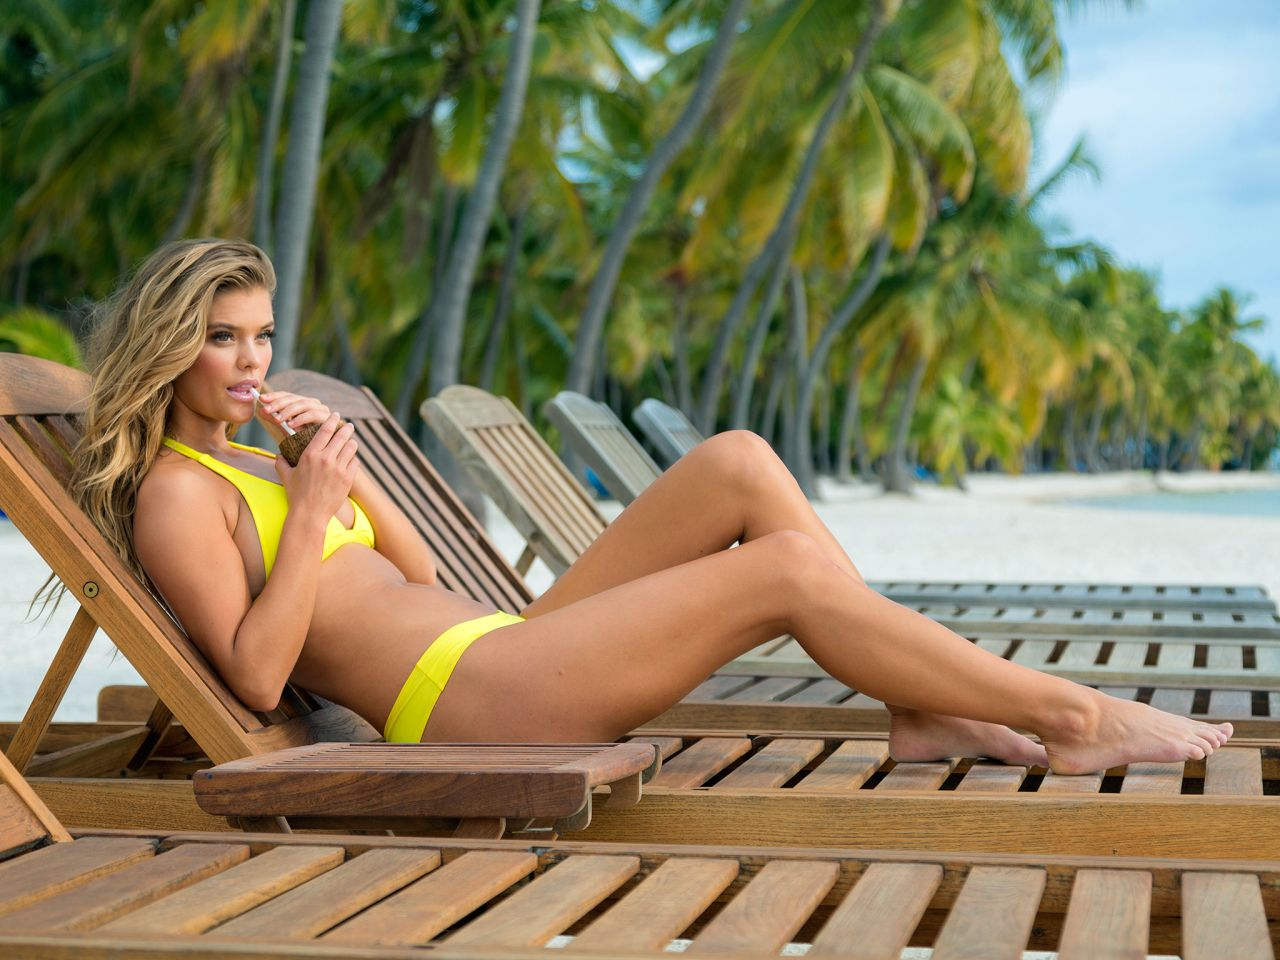 Nina Agdal in Yellow Bikini - Travel Channel: Beach Week 2015